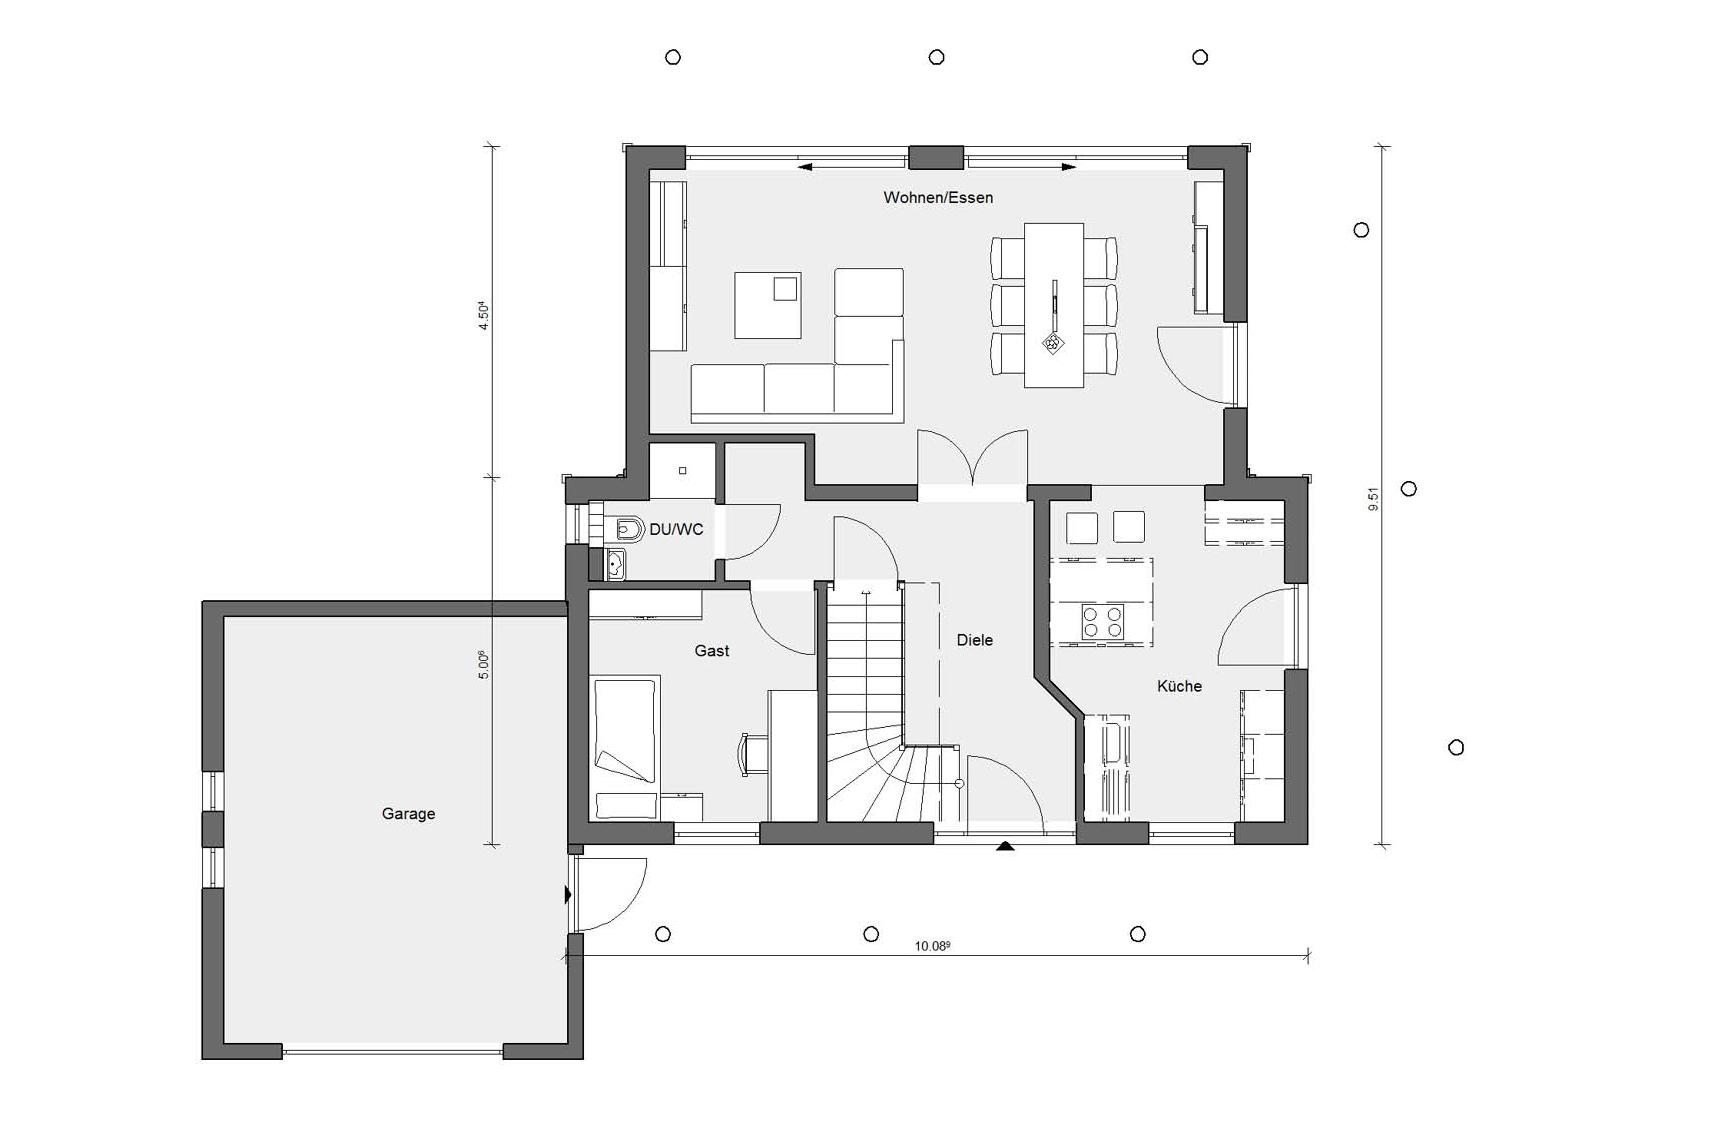 Floor plan ground floor Young Family Home E 15-146.3